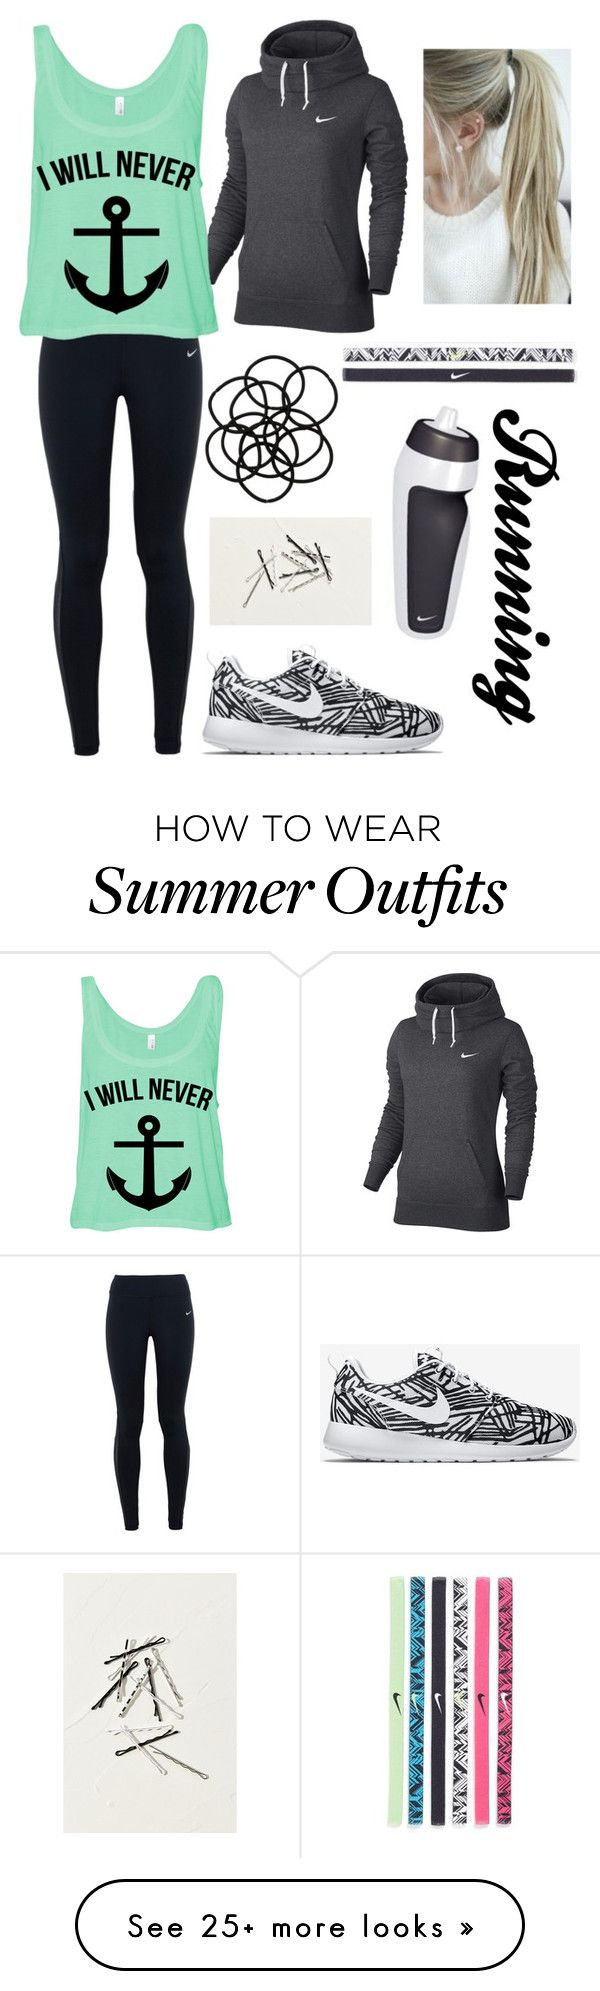 """Going for a run"" by squidney12 on Polyvore featuring NIKE, Monki, women's clothing, women's fashion, women, female, woman, misses and juniors"